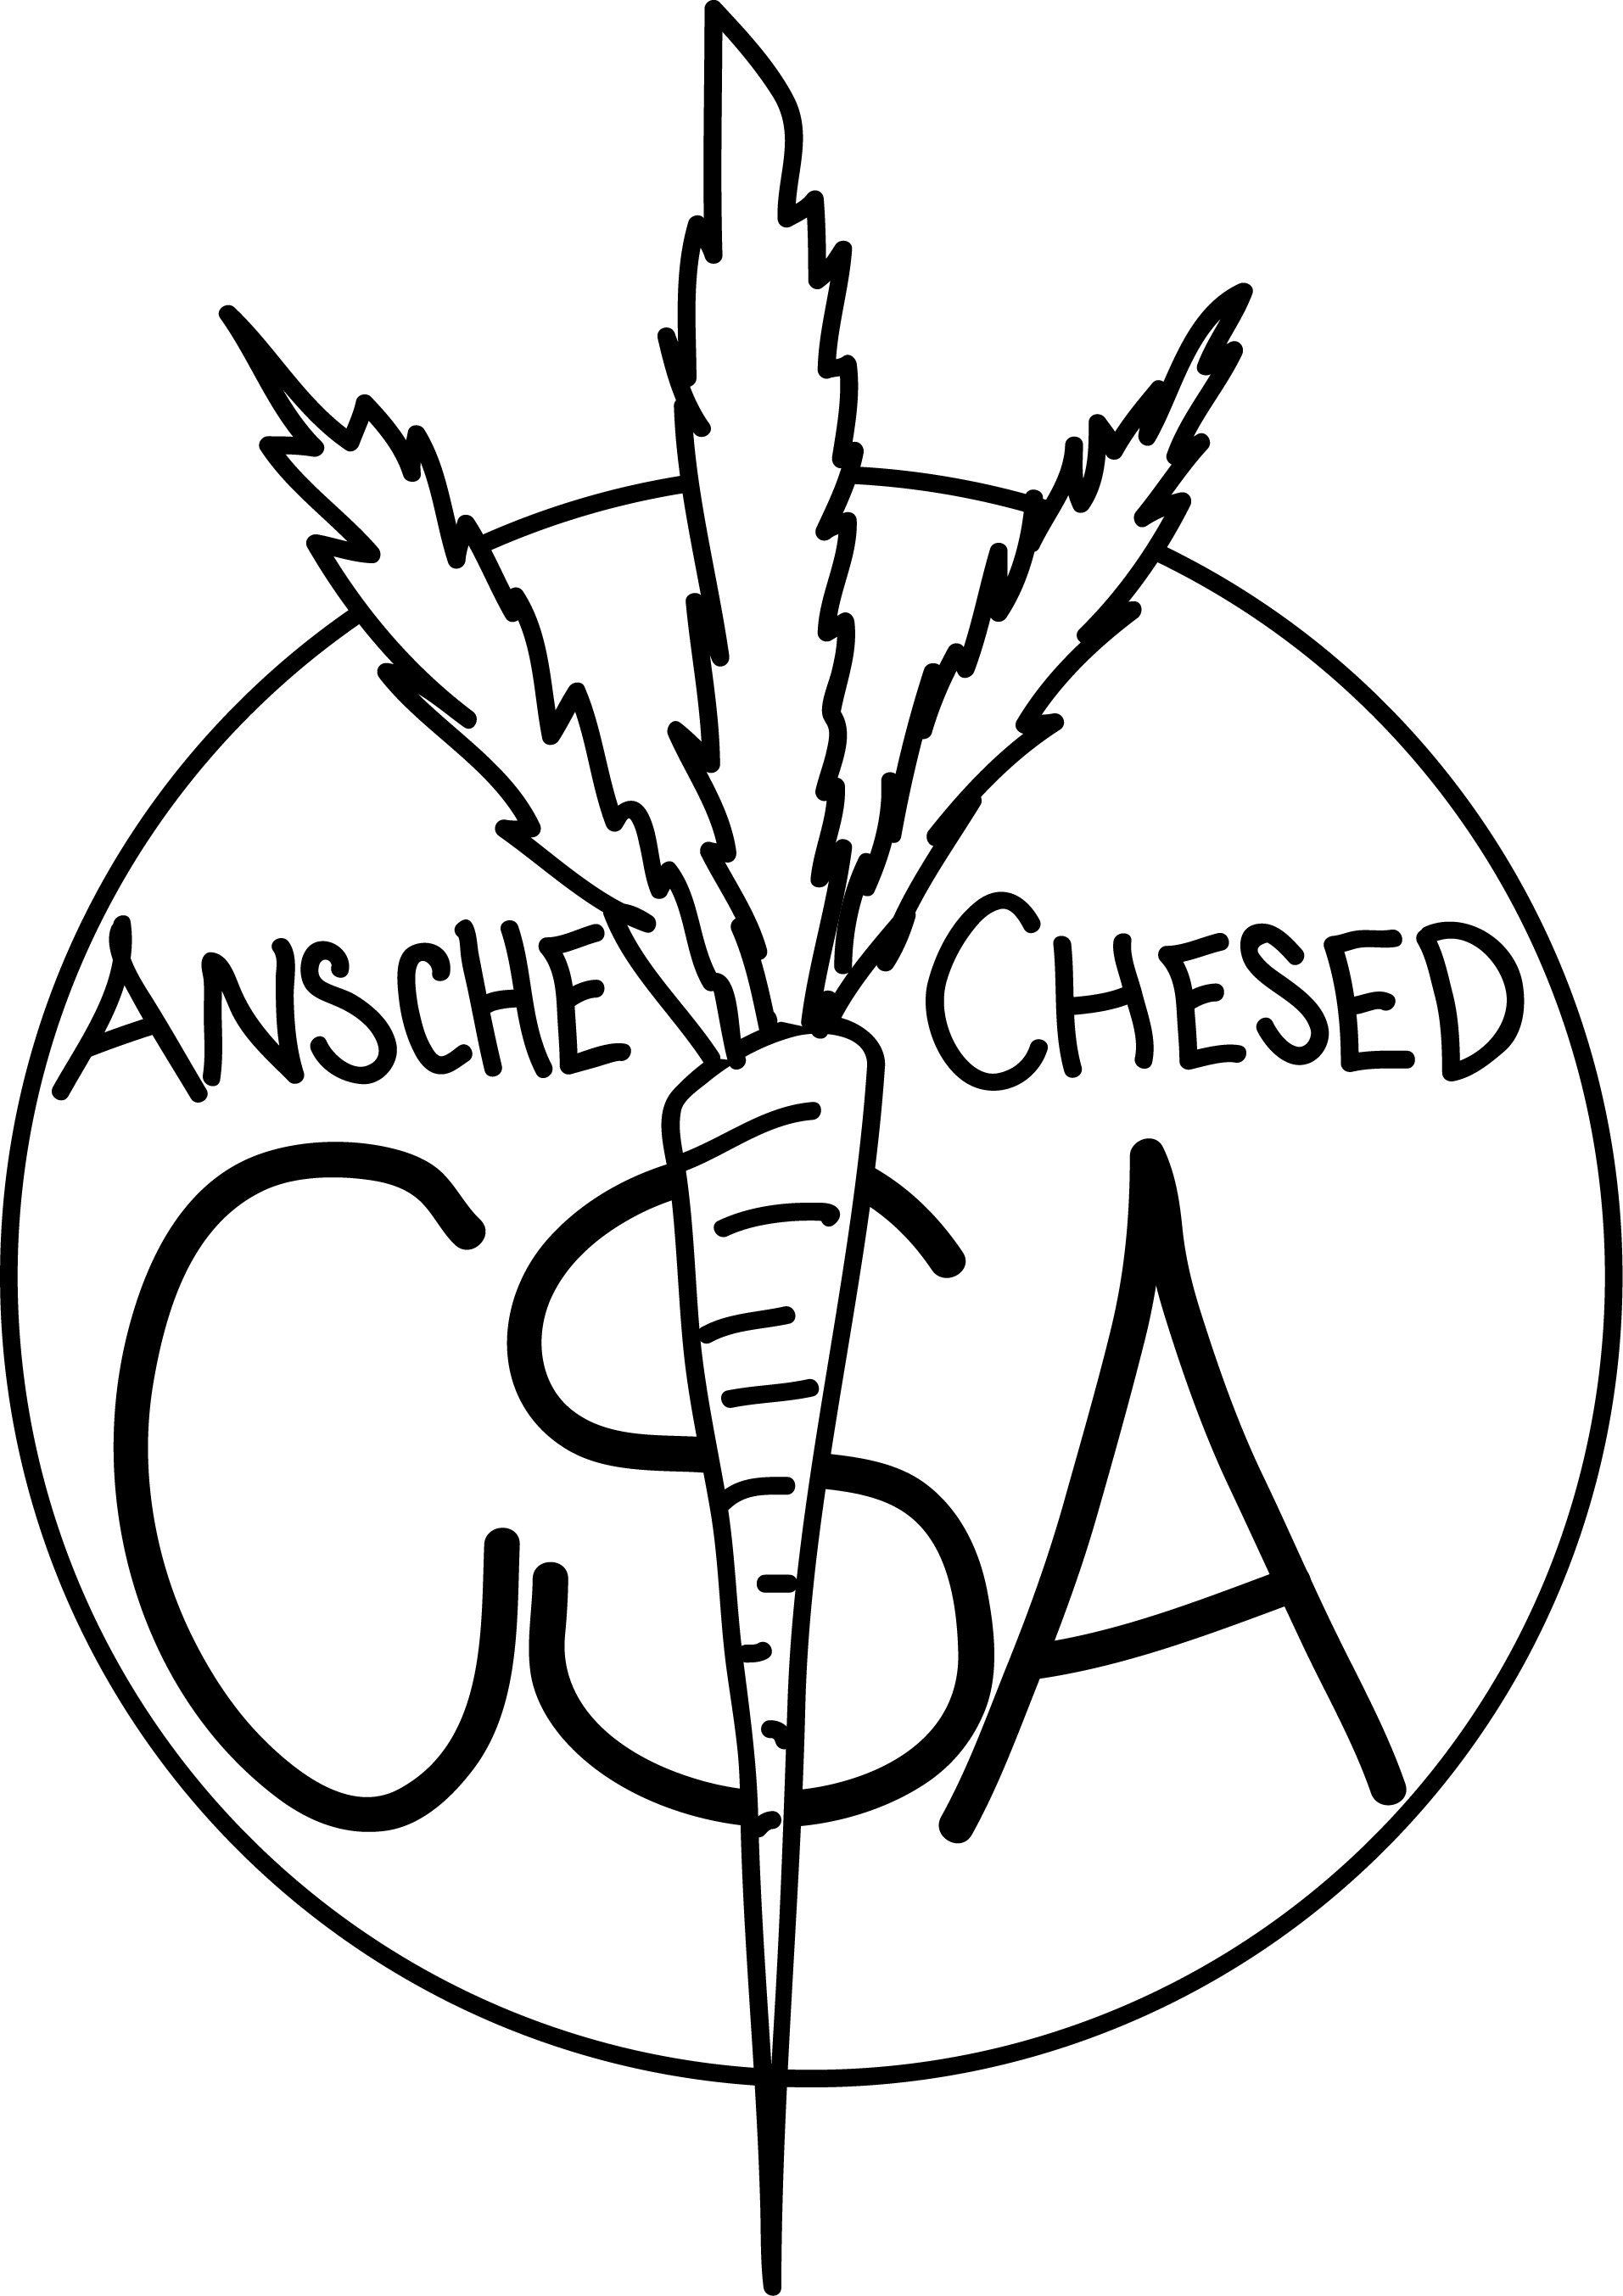 Ansche Chesed CSA